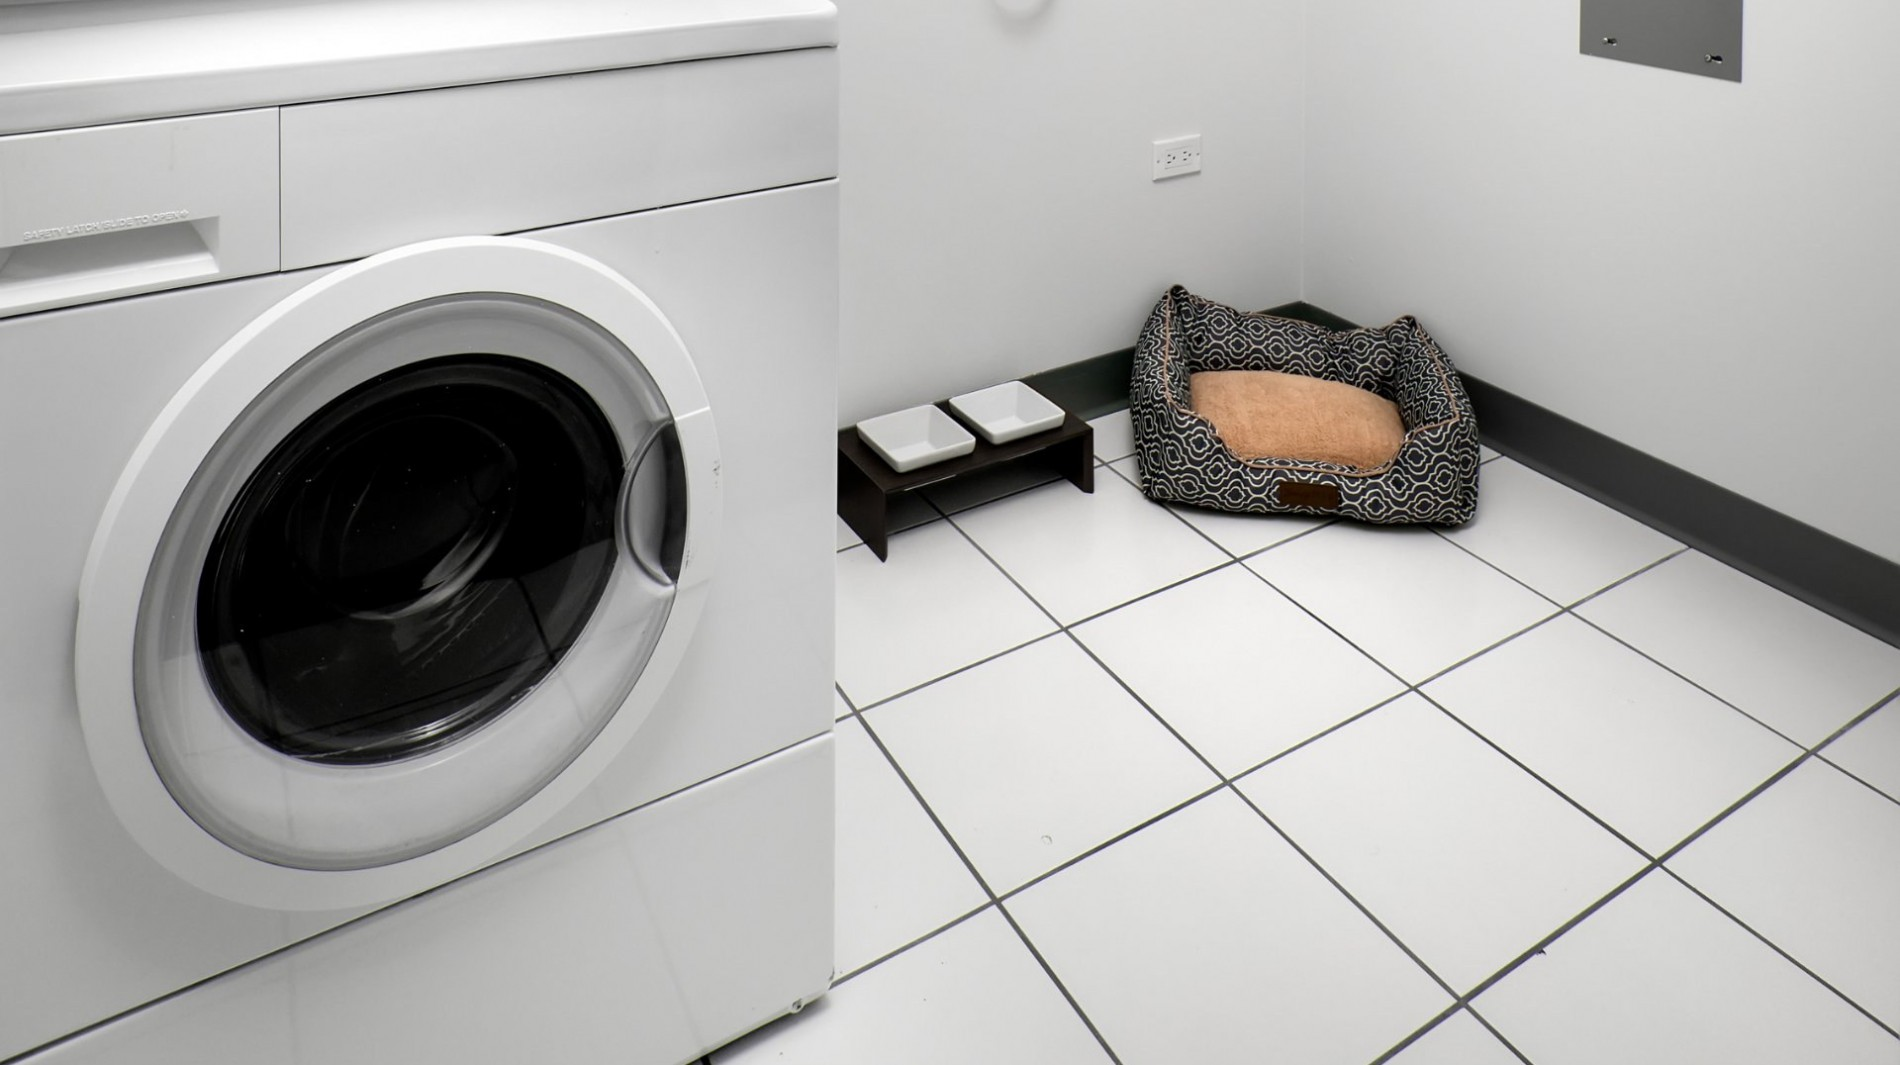 Full-size ENERGY STAR washers and dryers are included in every residence.